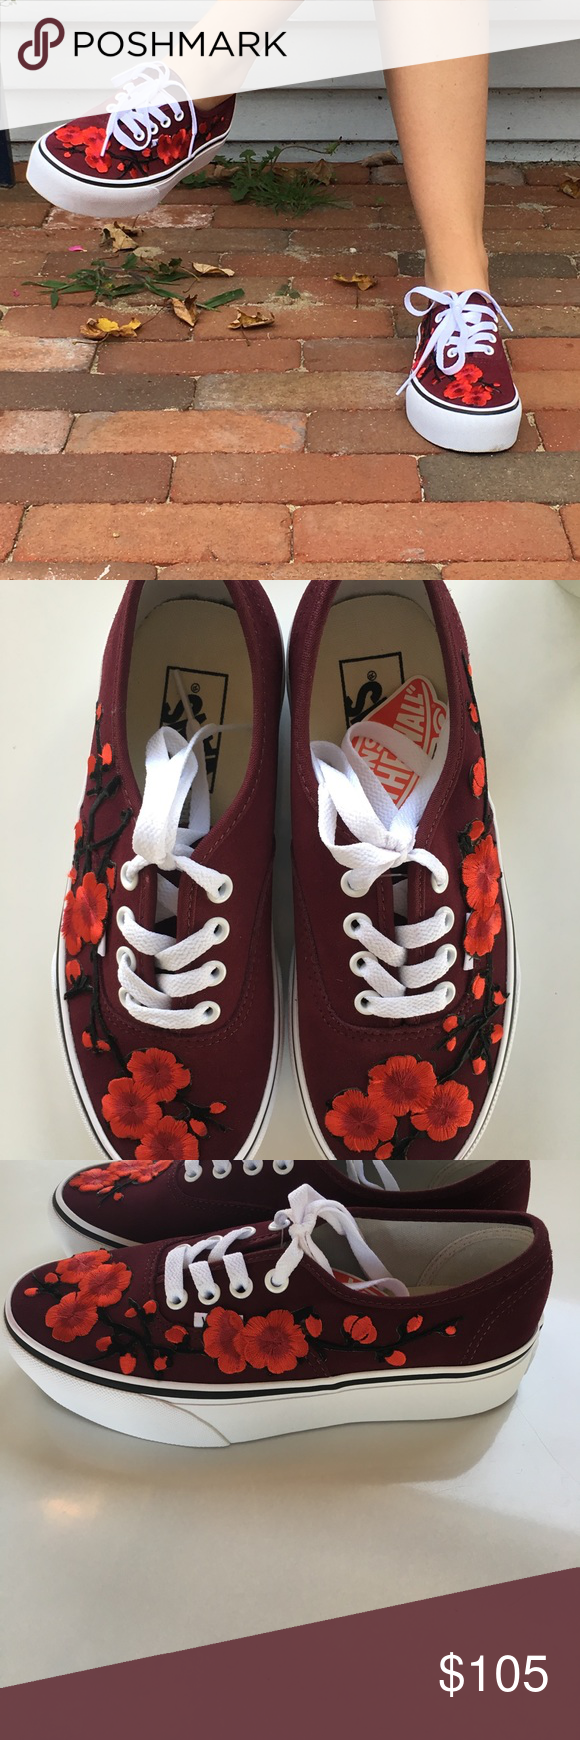 77f52e1389 Custom Patch Cherry Blossom Vans Posting these to see if anyone would be  interested in me